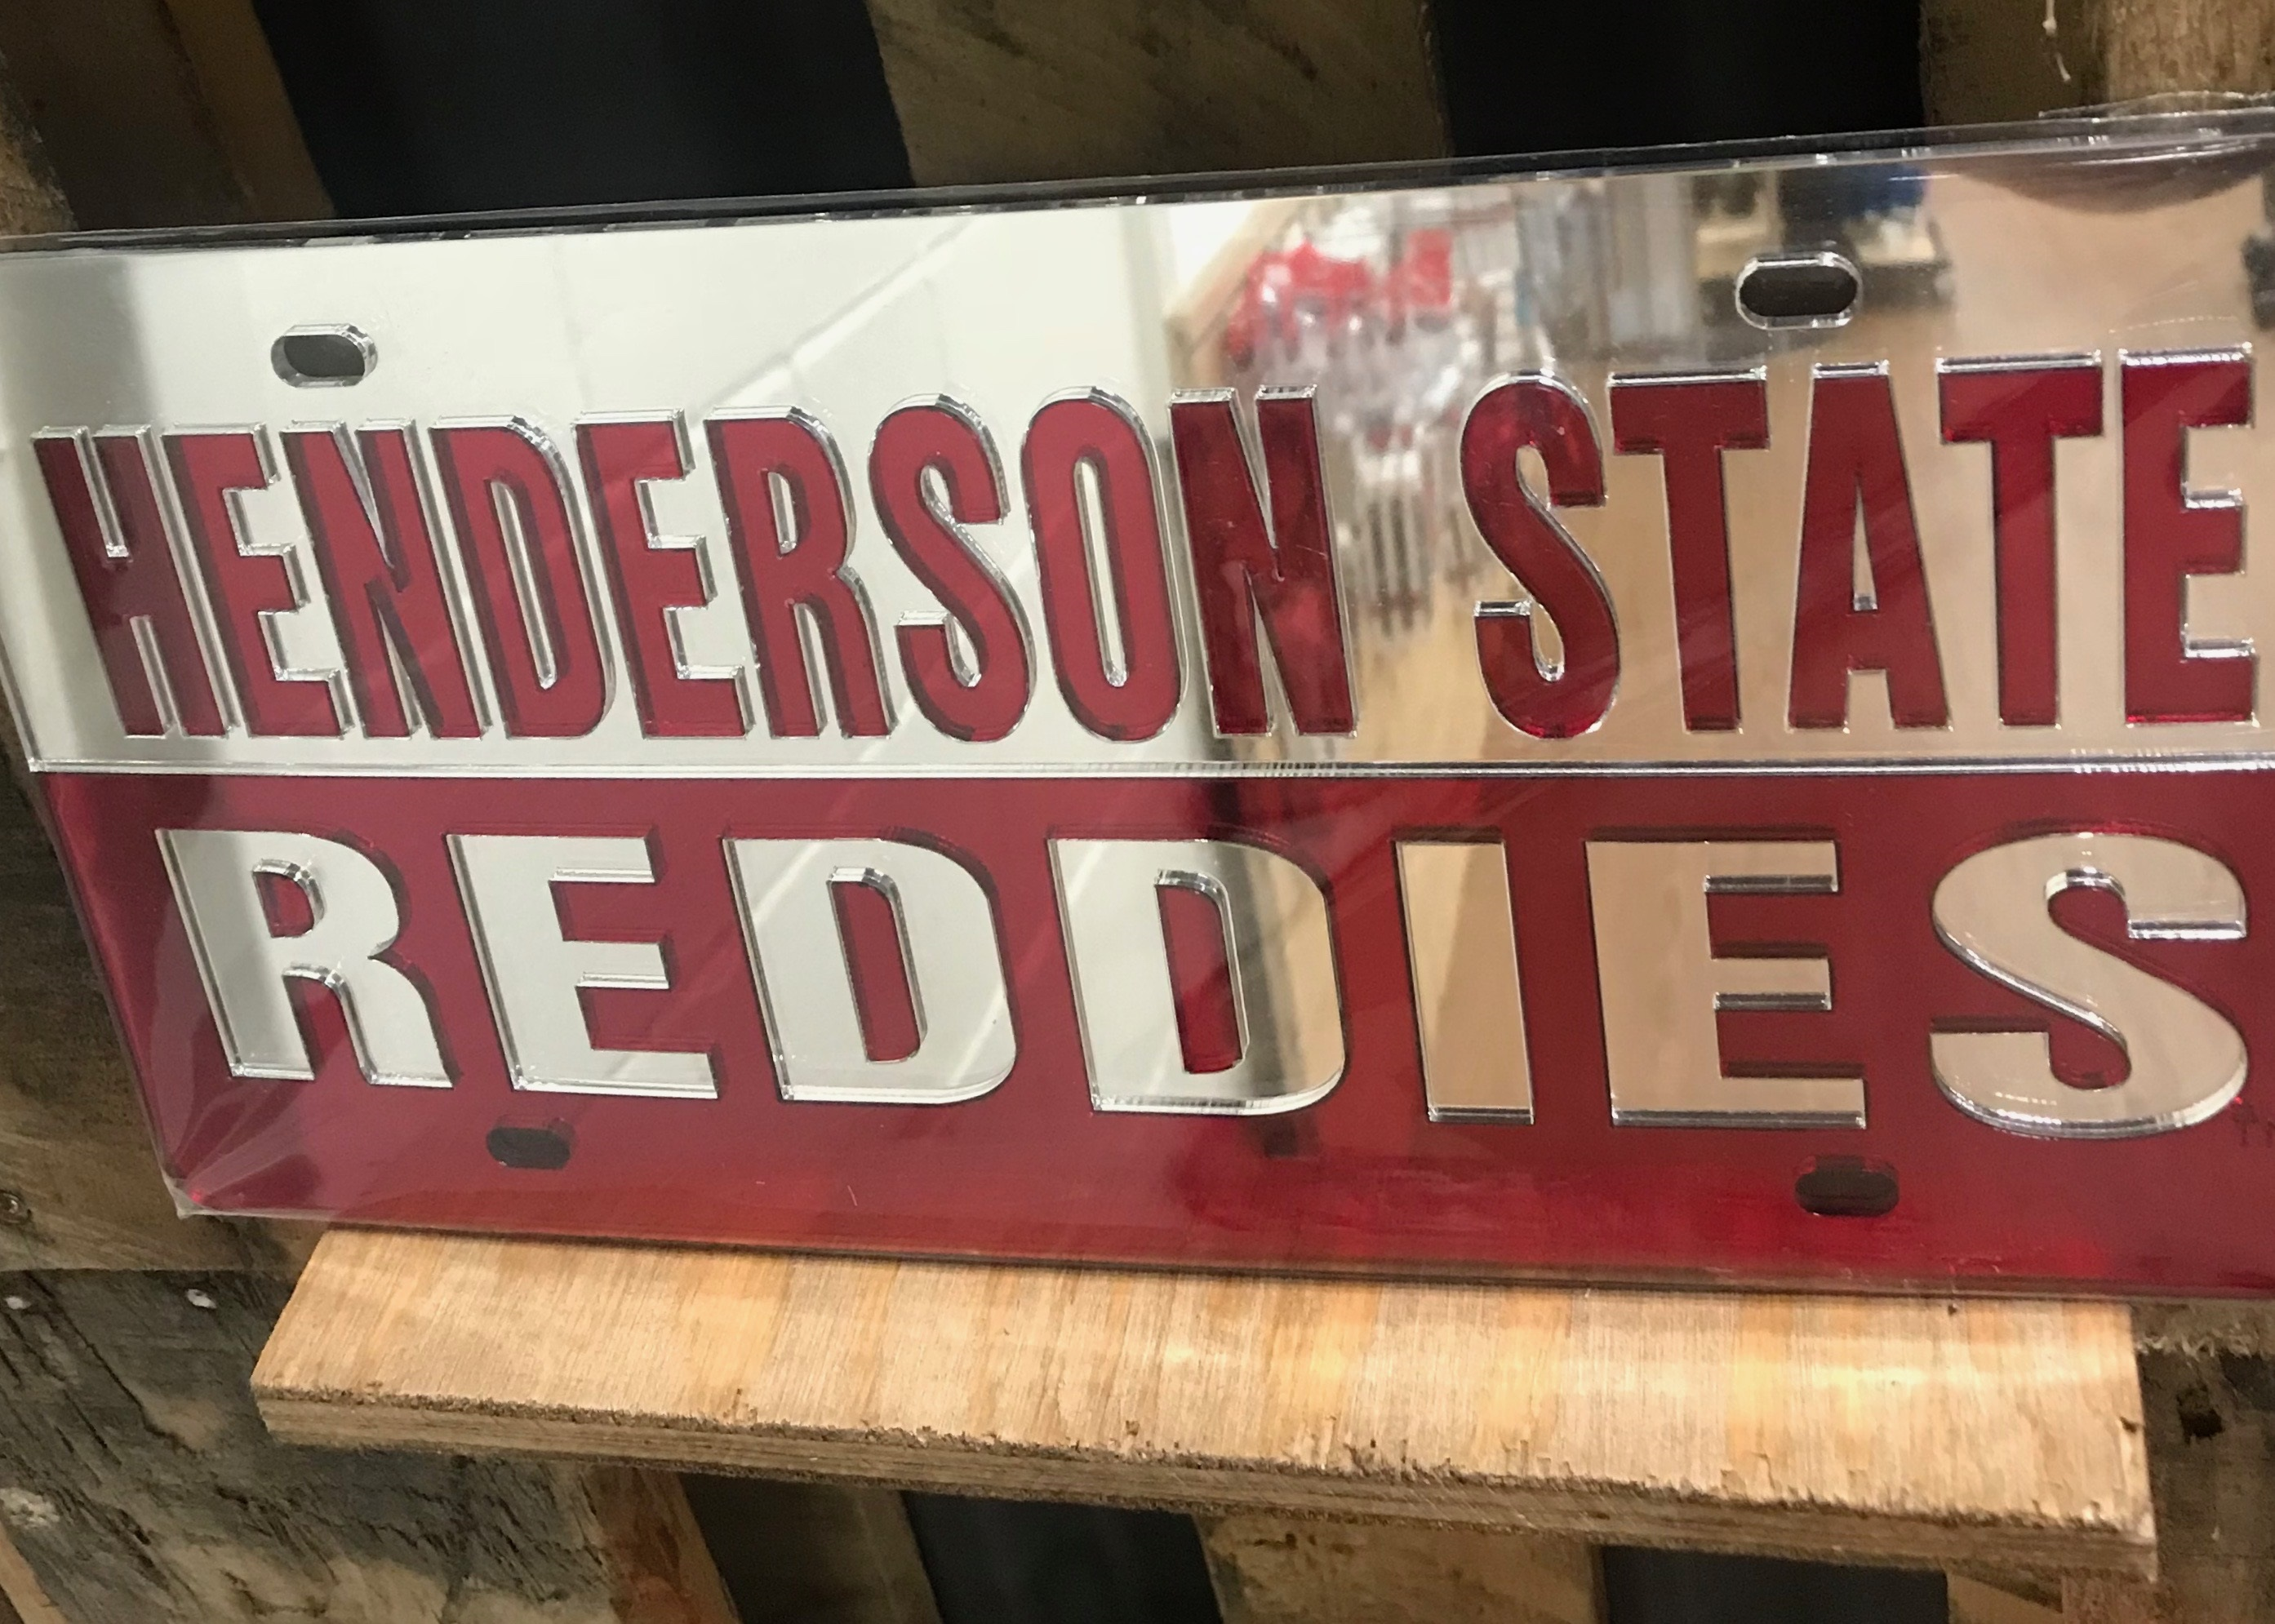 HENDERSON STATE REDDIES LICENSE PLATE